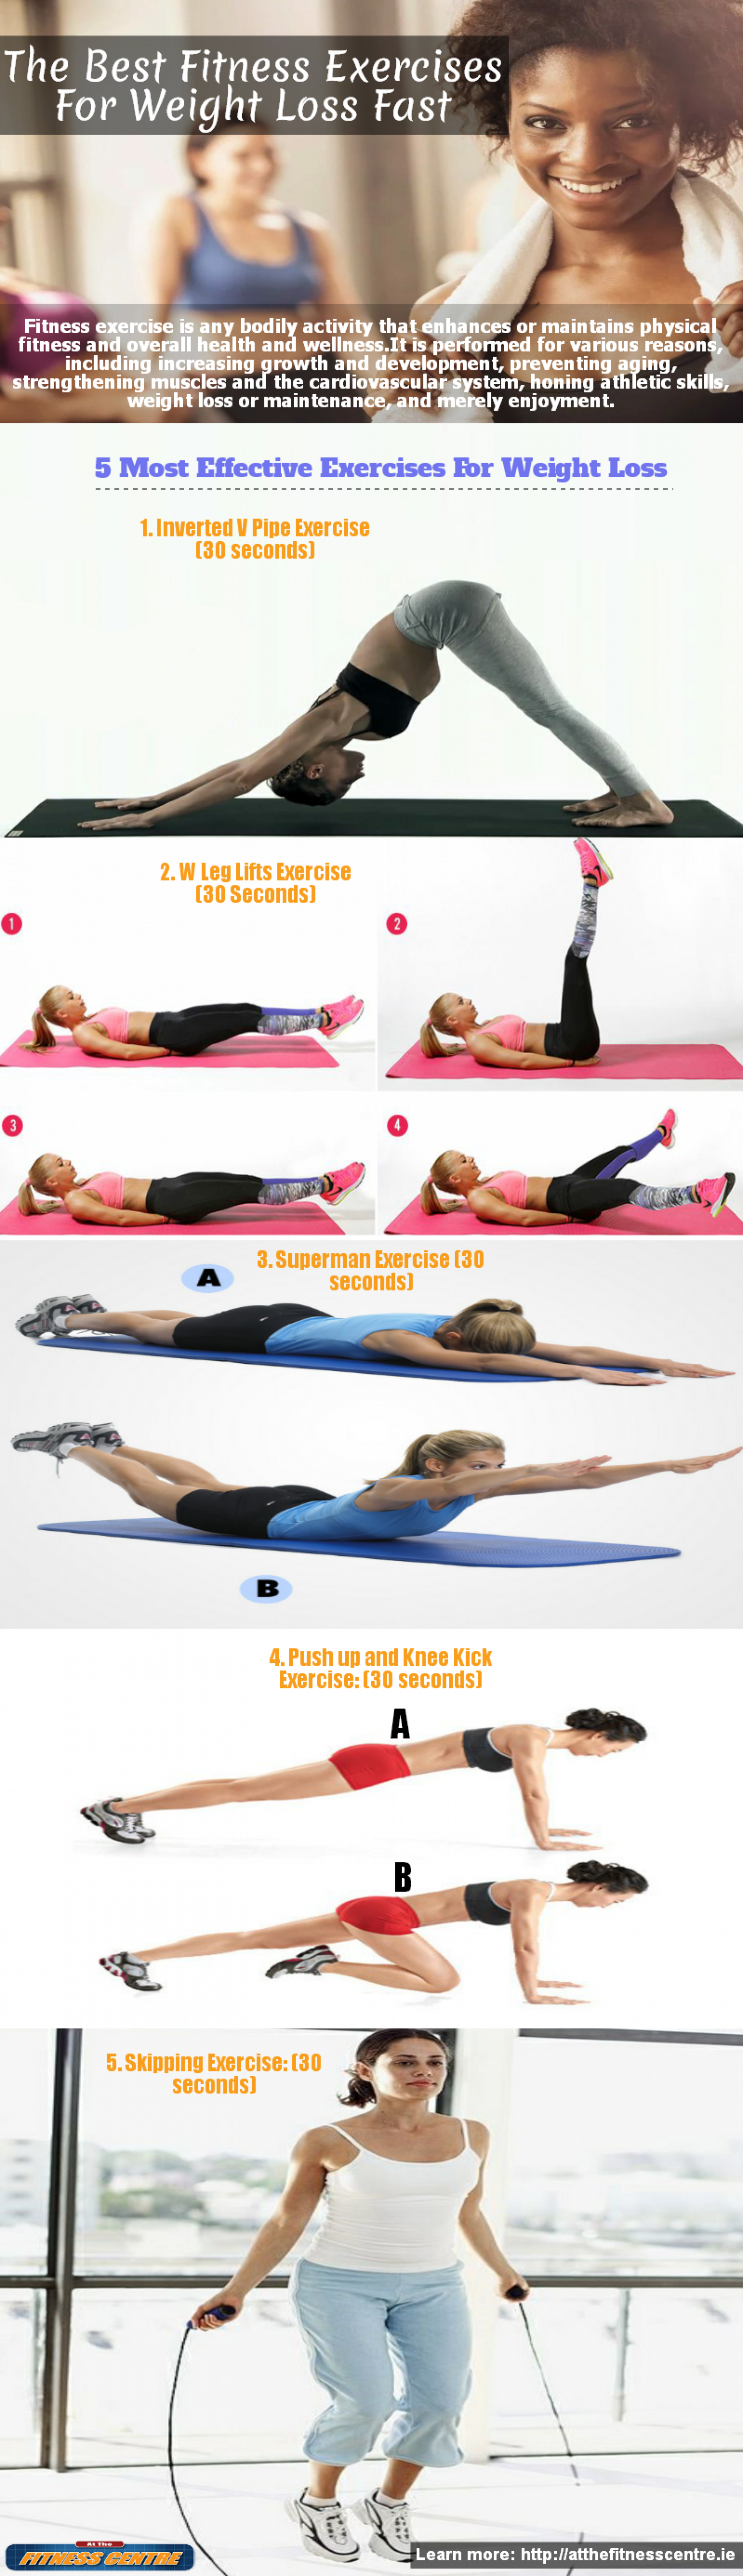 Best Exercises for fast Weight Loss Infographic